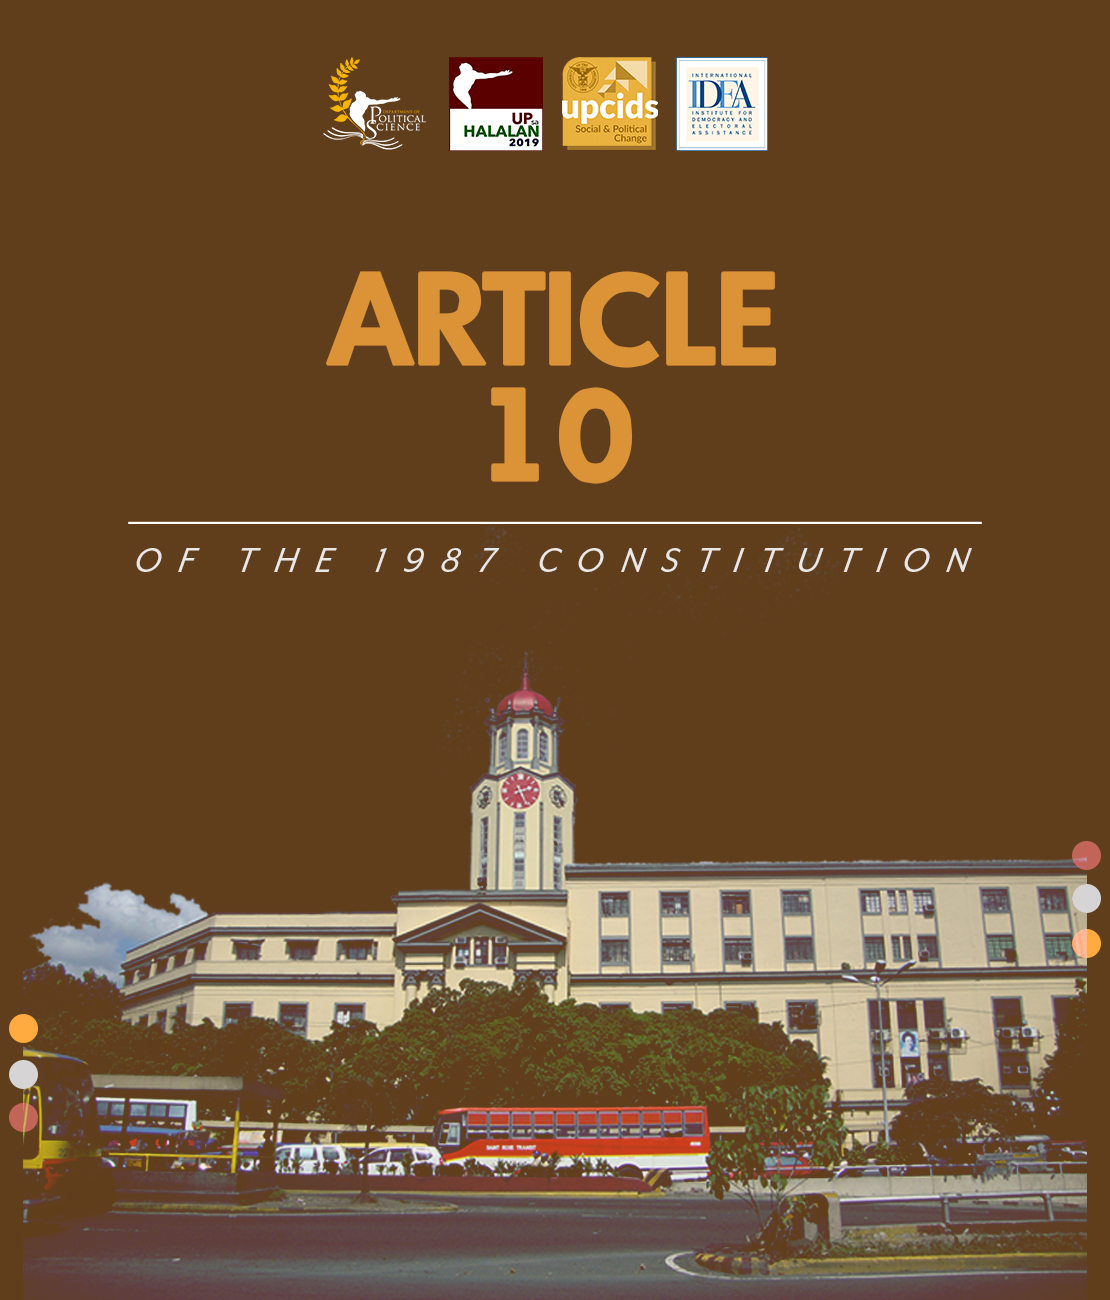 Article 10 of the 1987 Constitution